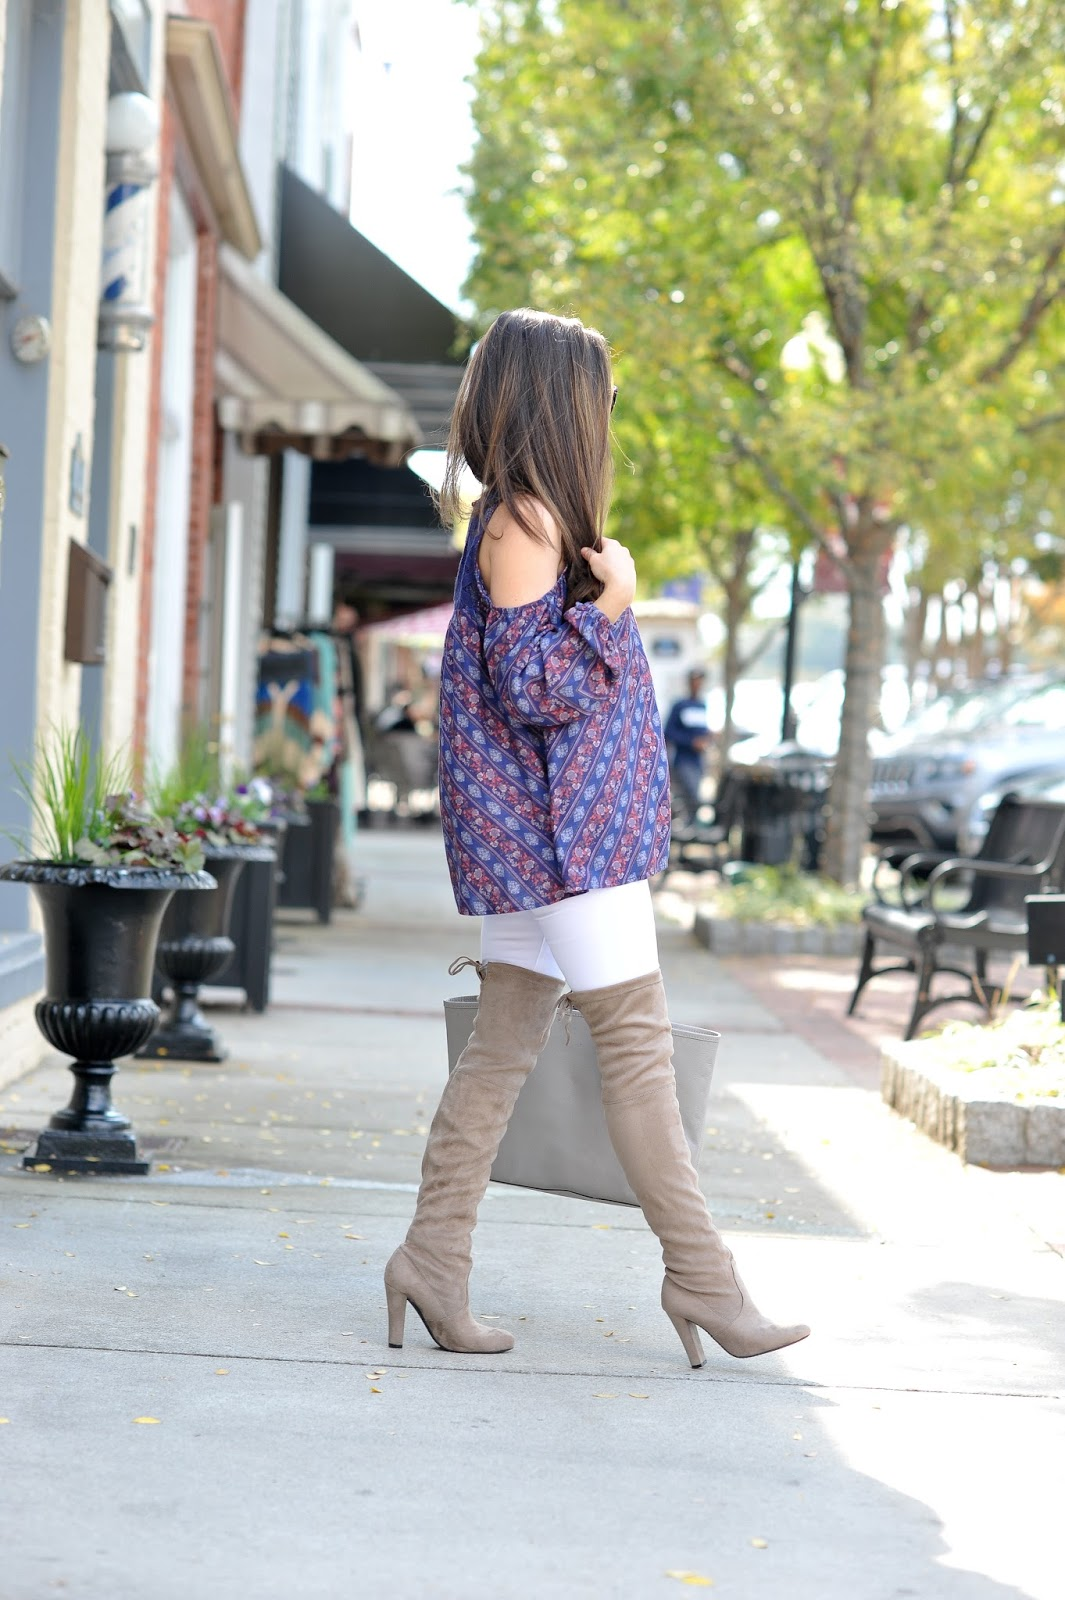 Cold Shoulder Top & Over the Knee Boots - Erica Valentin Style Blogger